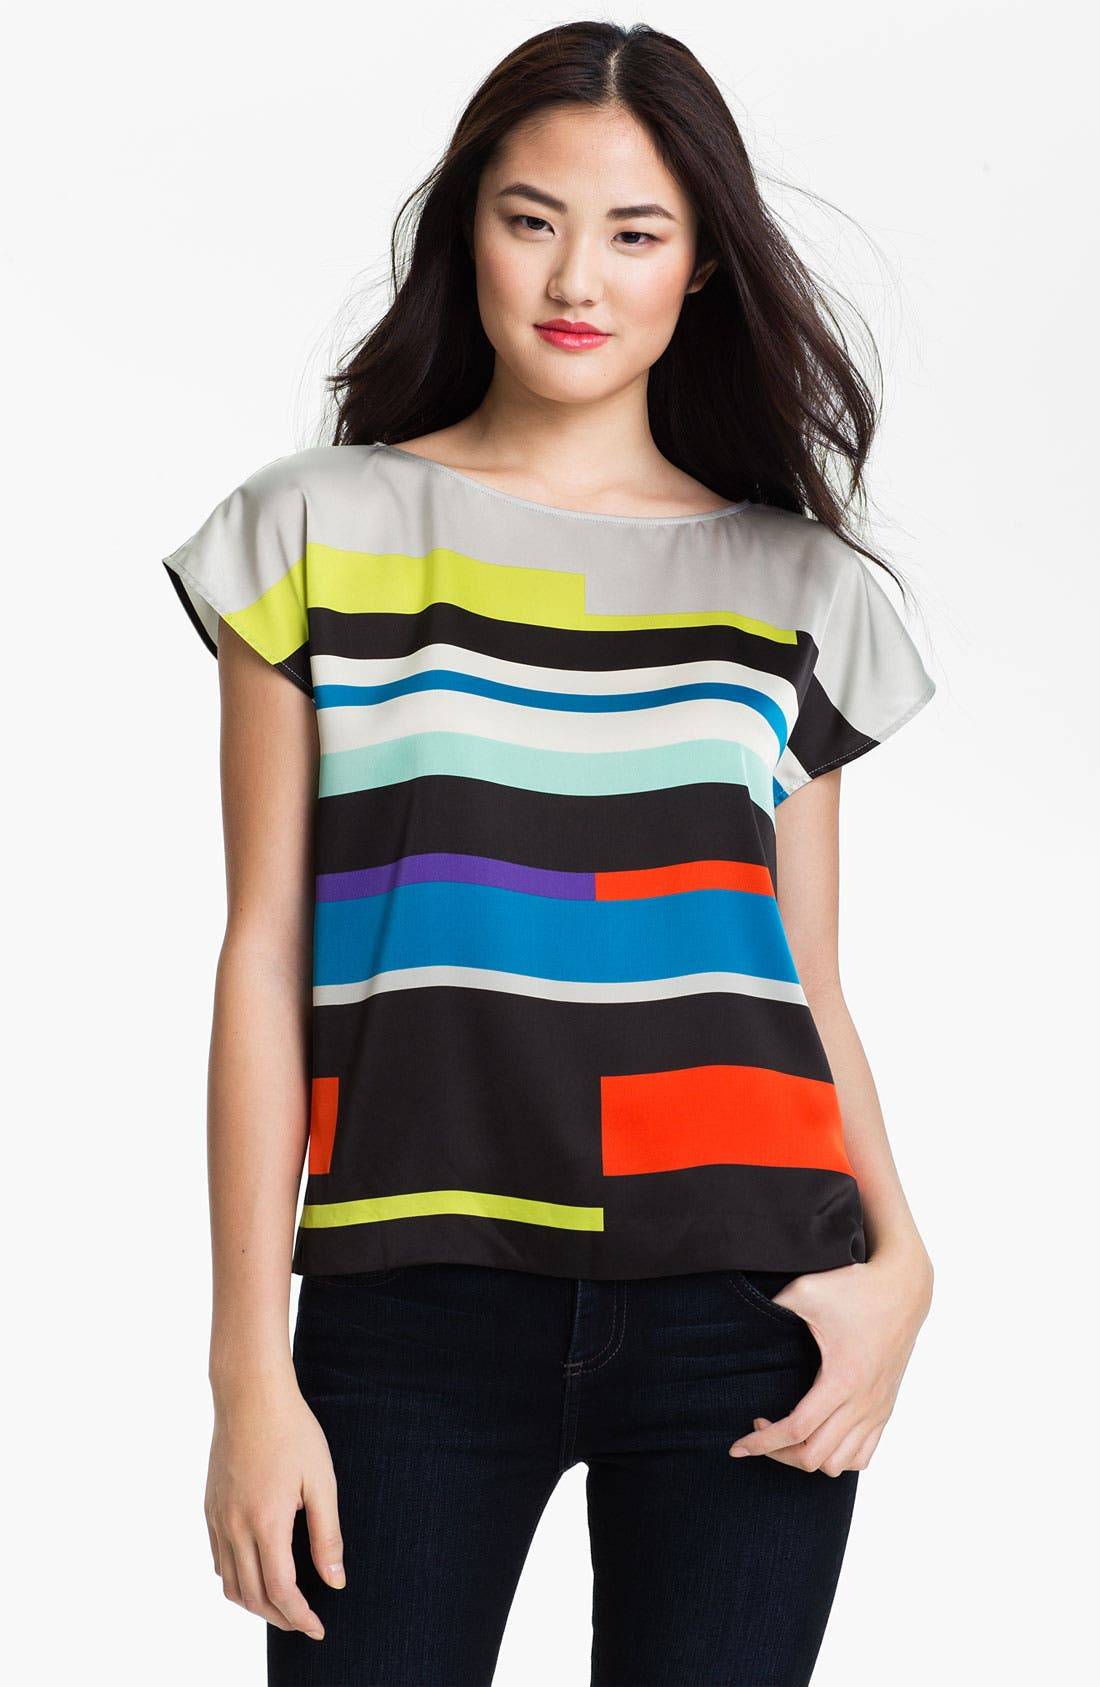 Alternate Image 1 Selected - Vince Camuto 'Graphic Lines' Blouse